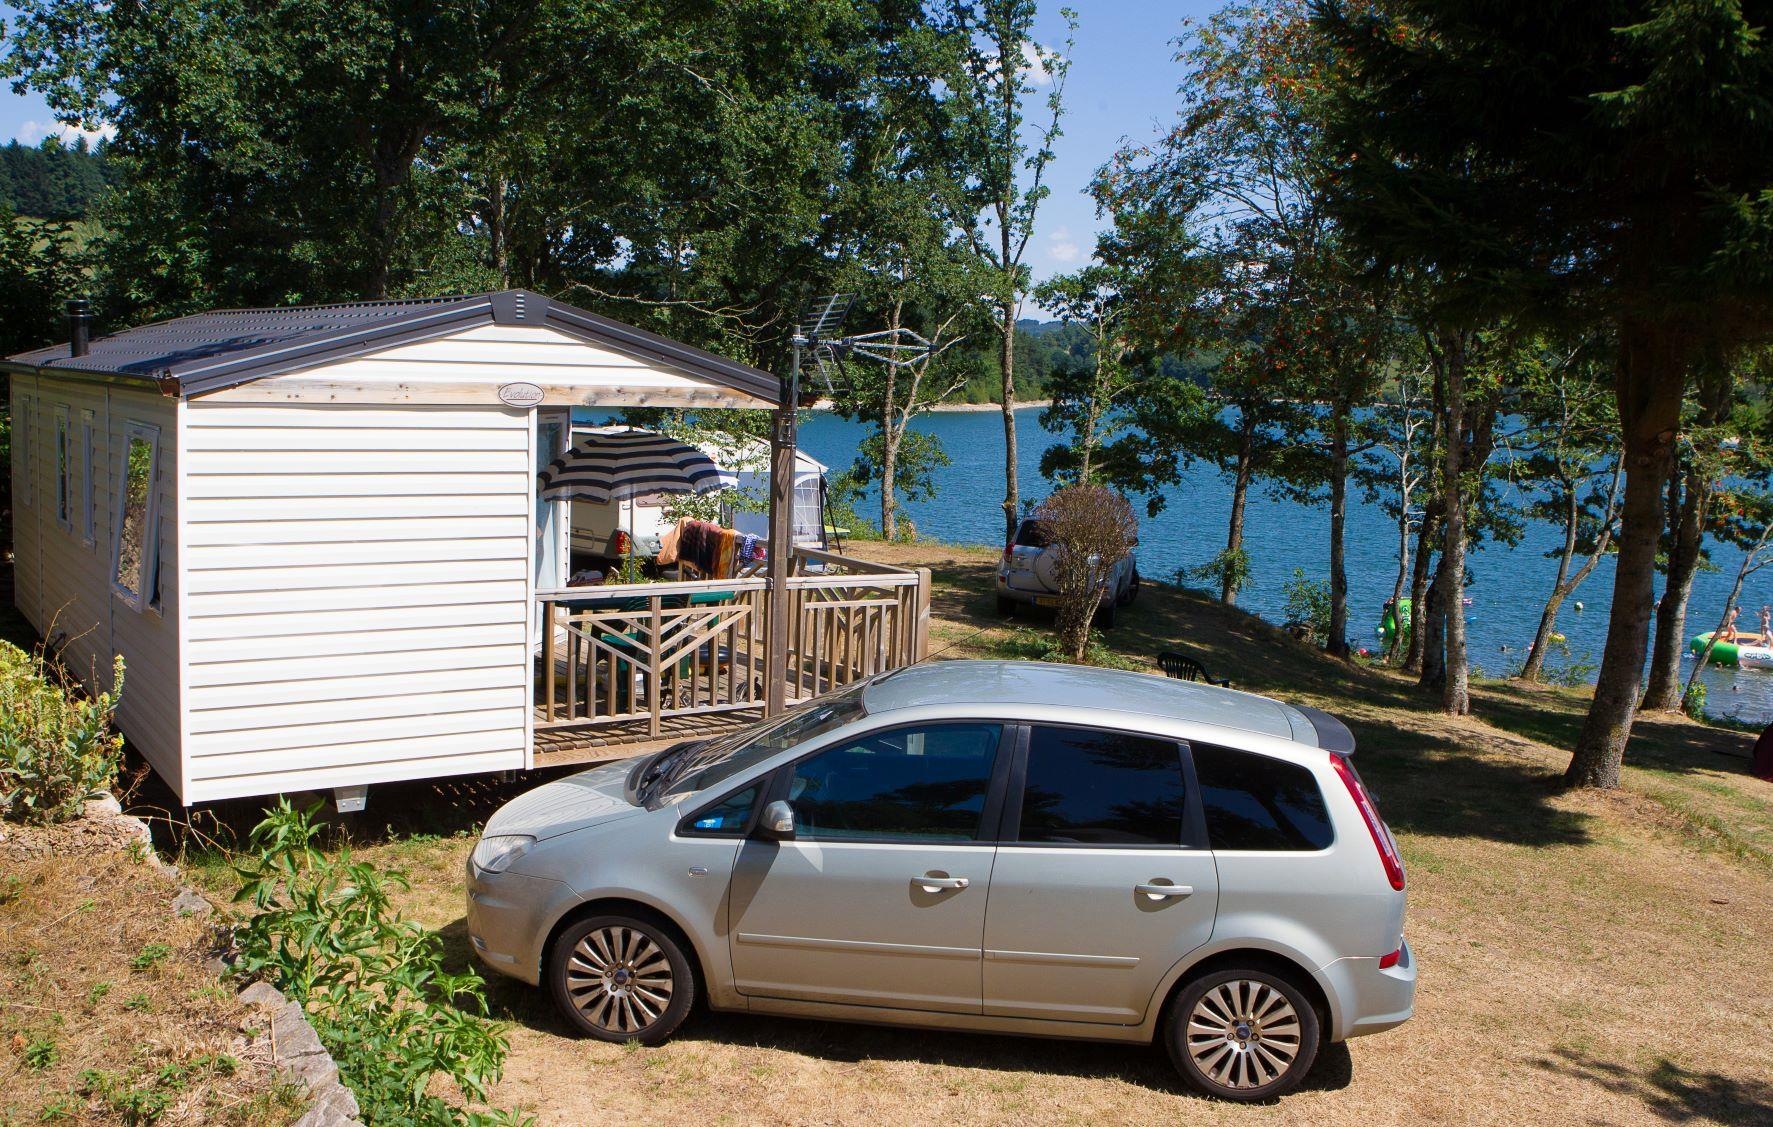 Accommodation - Mobile-Home Trigano Evolution Ti N°7 And 21. Lake View. Year 2014, Arrival Day On Monday In The High Season - Camping SOLEIL LEVANT